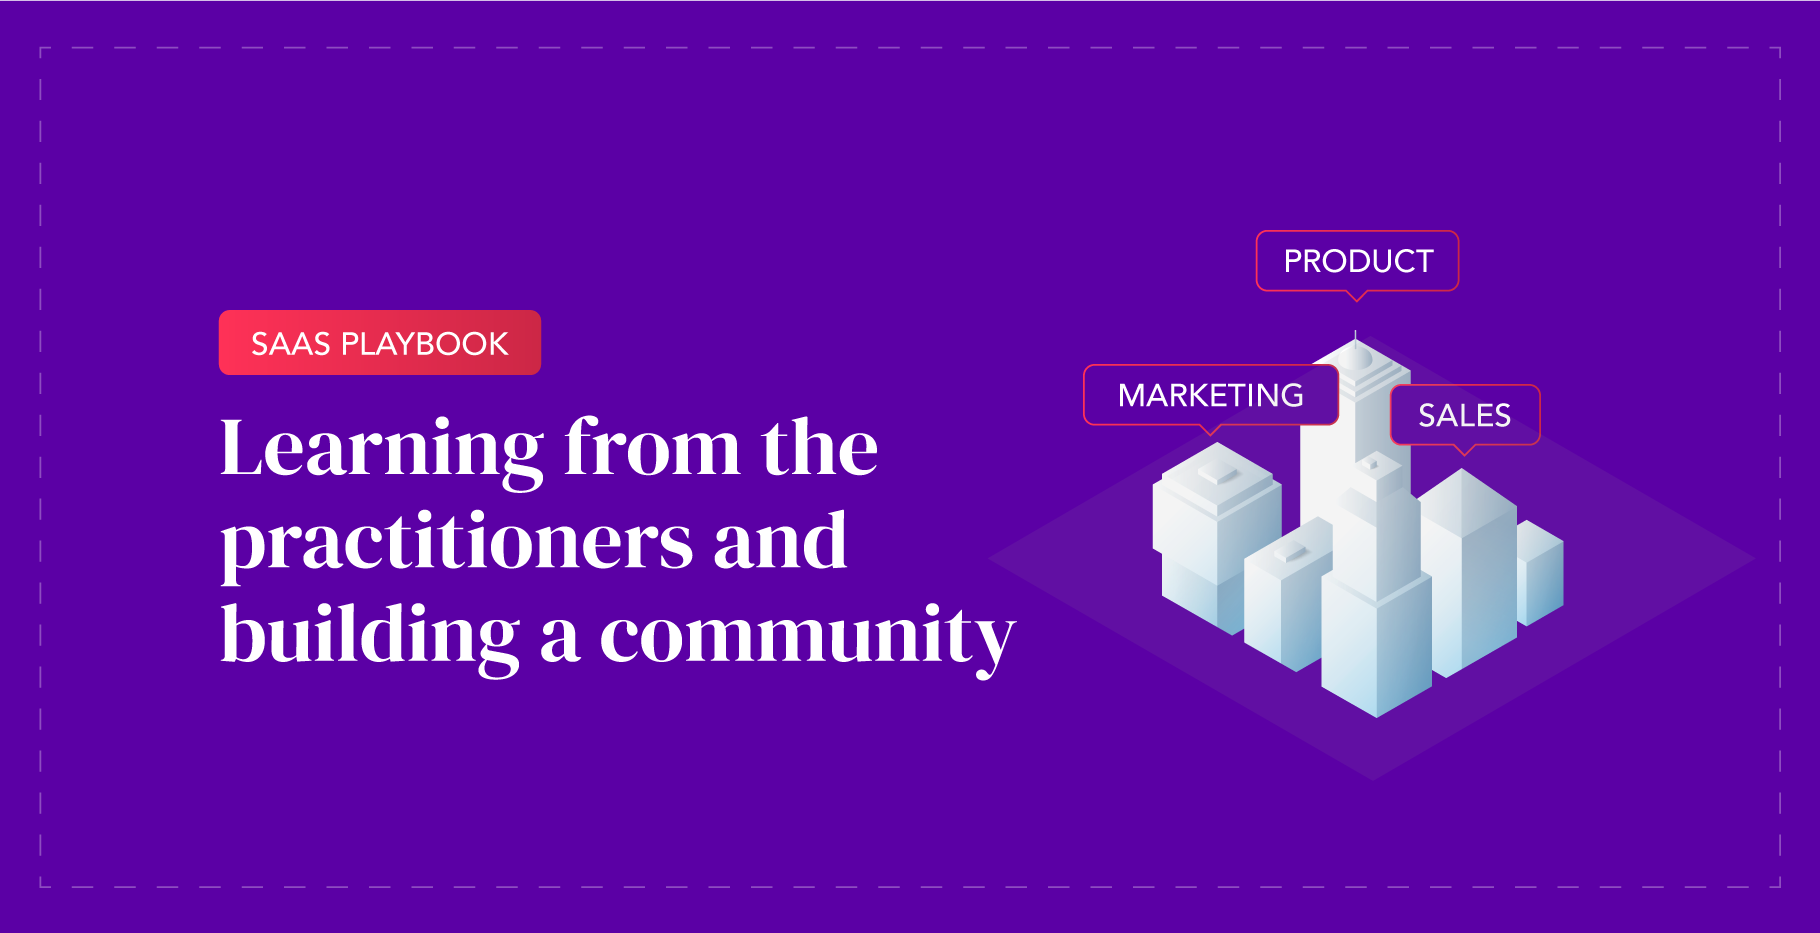 SaaS Playbook: Learning from the Practitioners and Building a Community